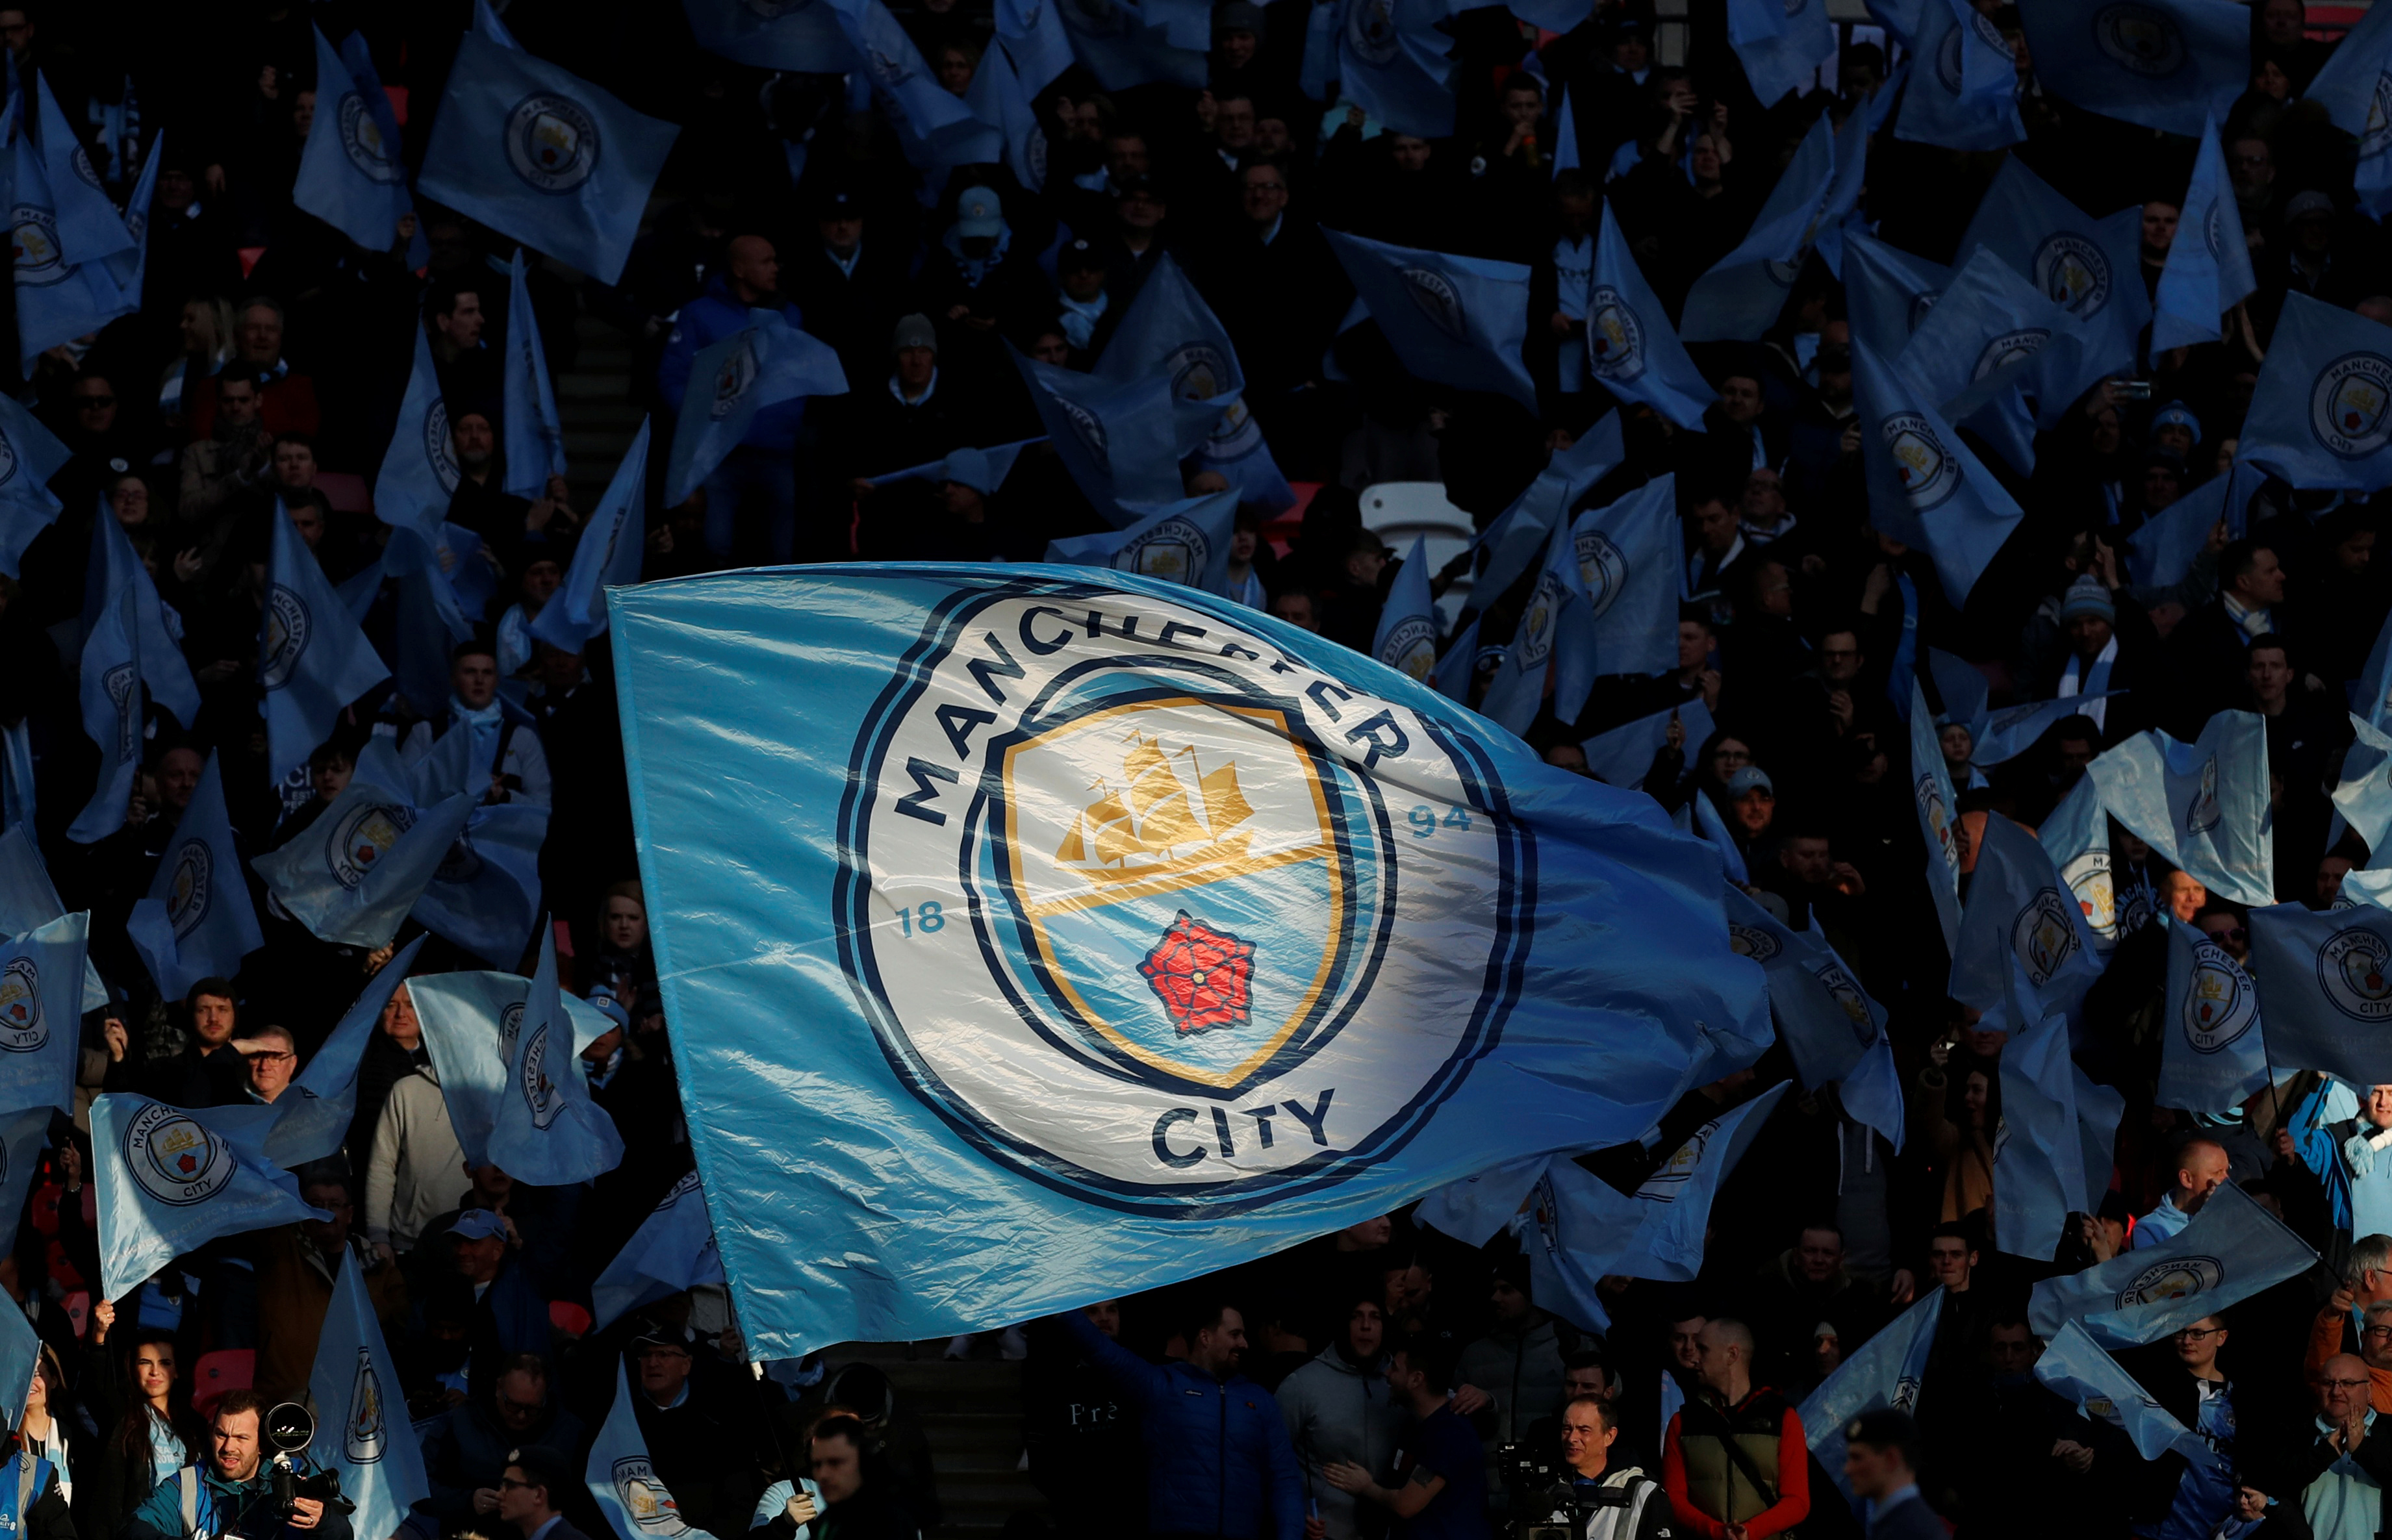 Soccer Football - Carabao Cup Final - Aston Villa v Manchester City - Wembley Stadium, London, Britain - March 1, 2020  Manchester City fans wave flags before the match   Action Images via Reuters/Lee Smith